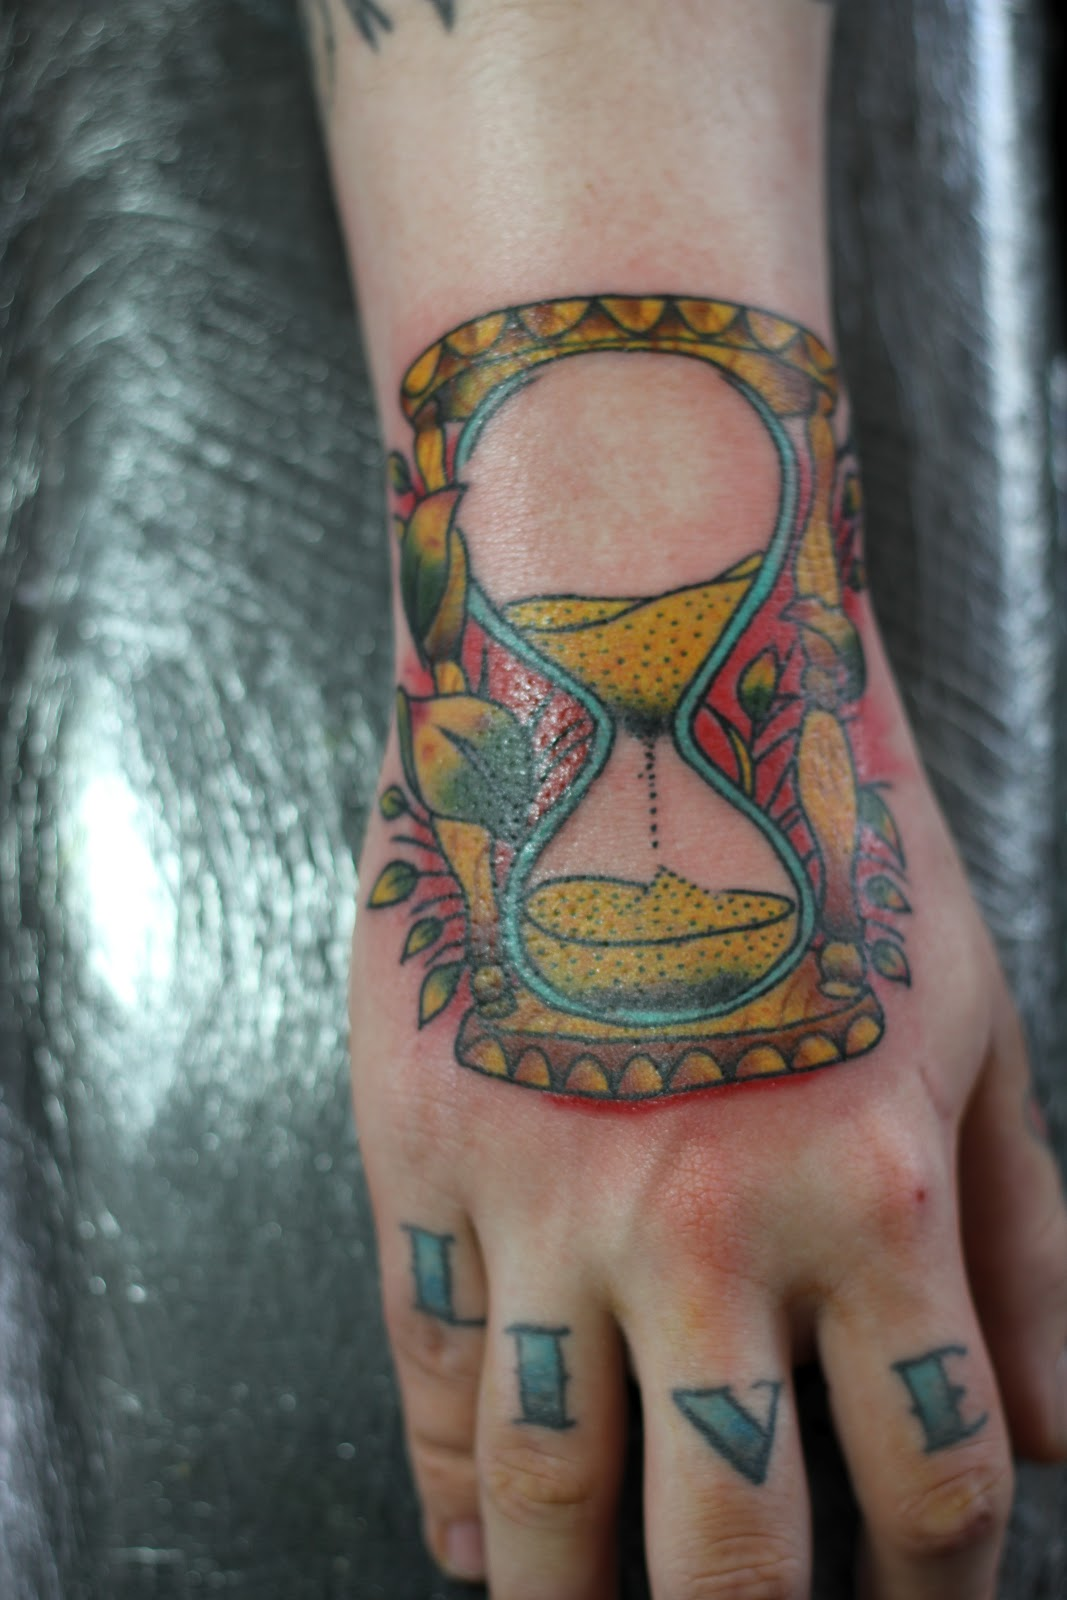 hourglass tattoos designs  ideas and meaning